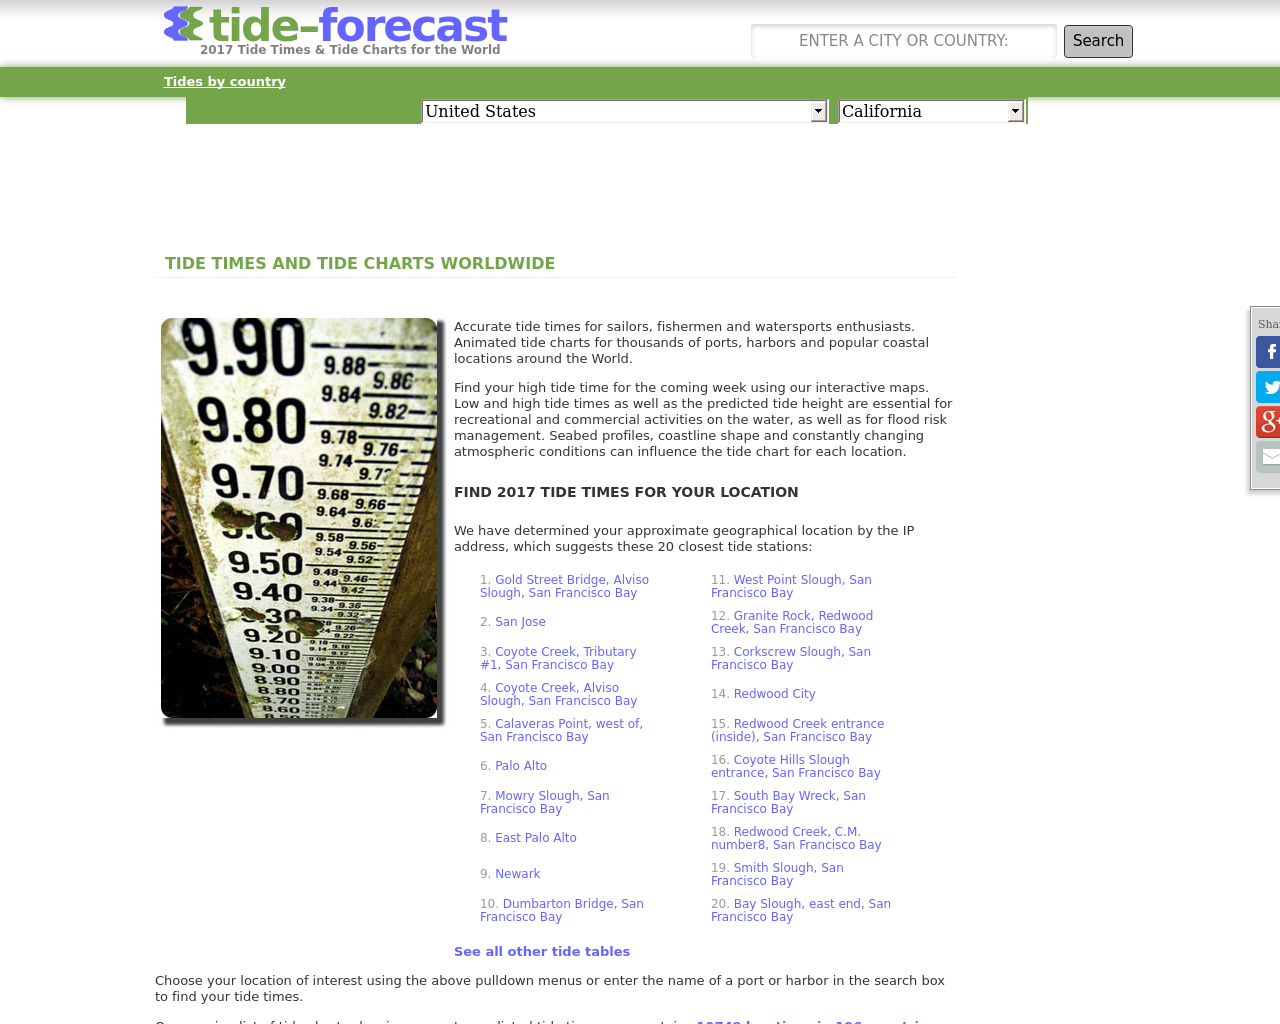 Tide-Forecast-Advertising-Reviews-Pricing